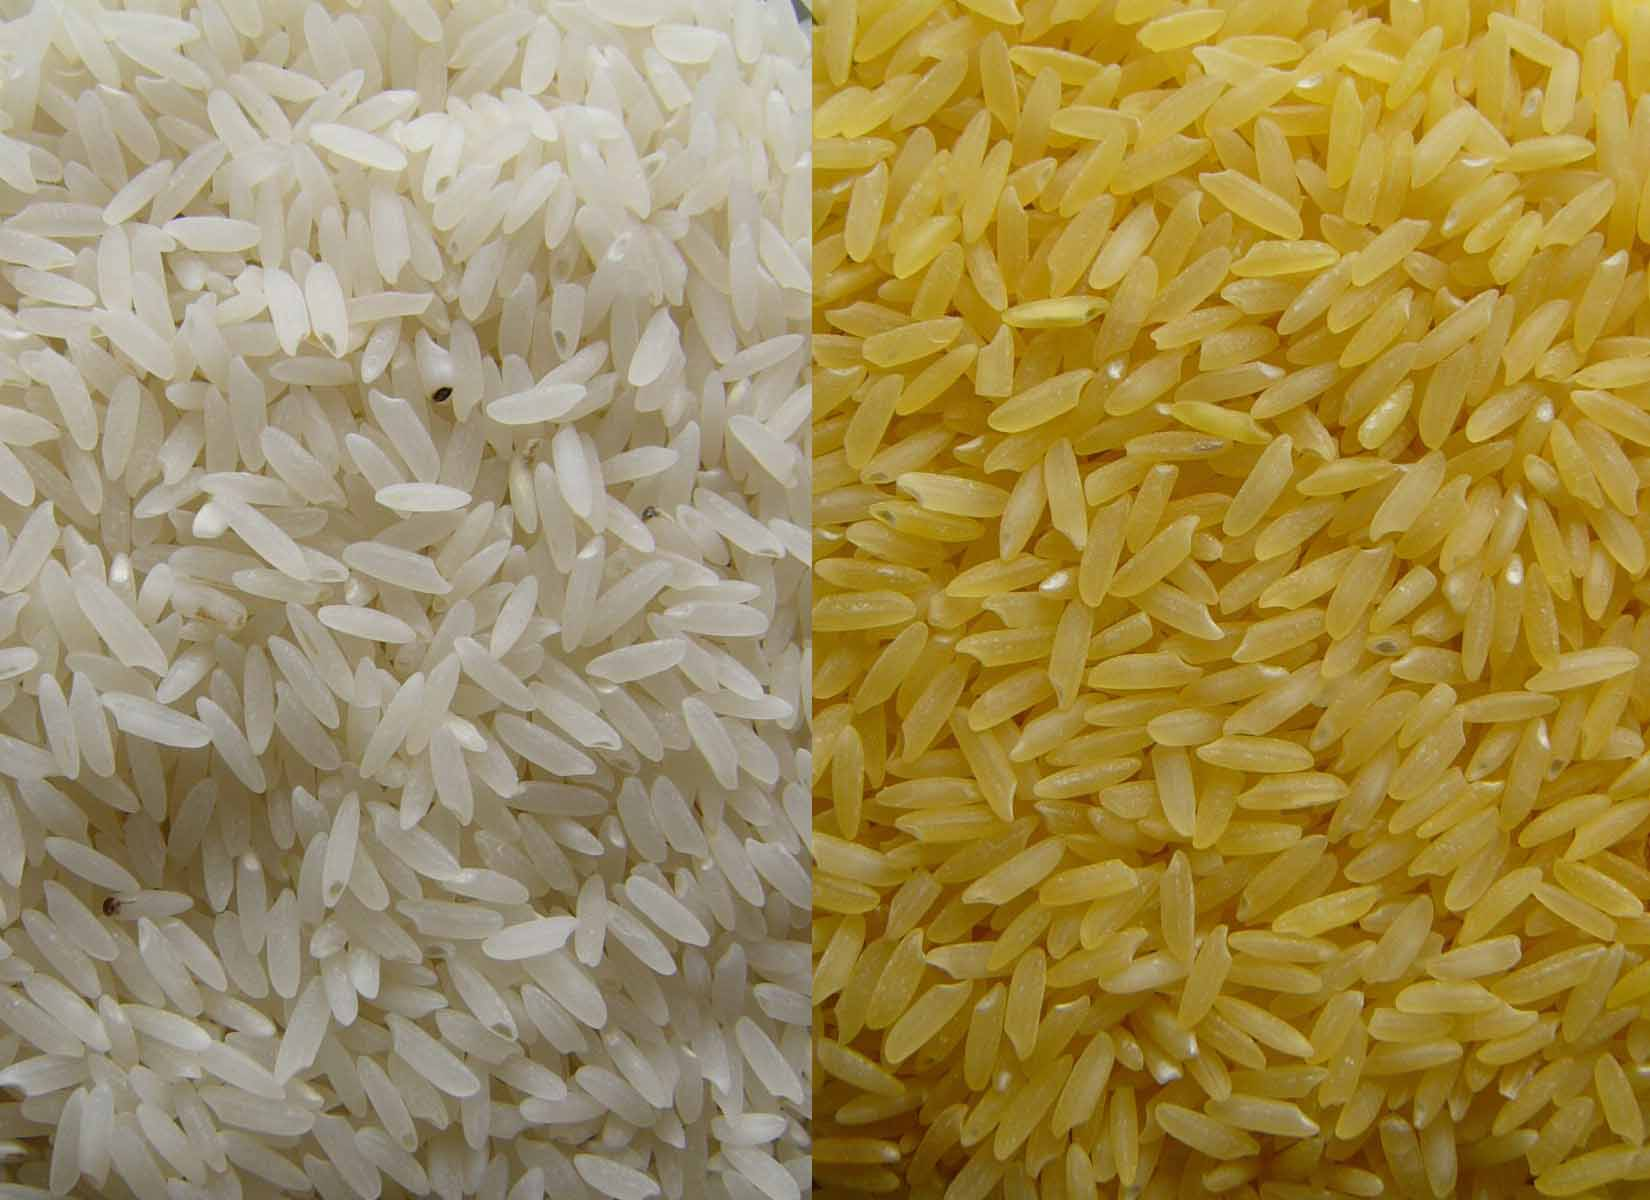 the golden rice project biofortified rice as a contribution to the alleviation of life threatening micronutrient deficiencies in developing countries